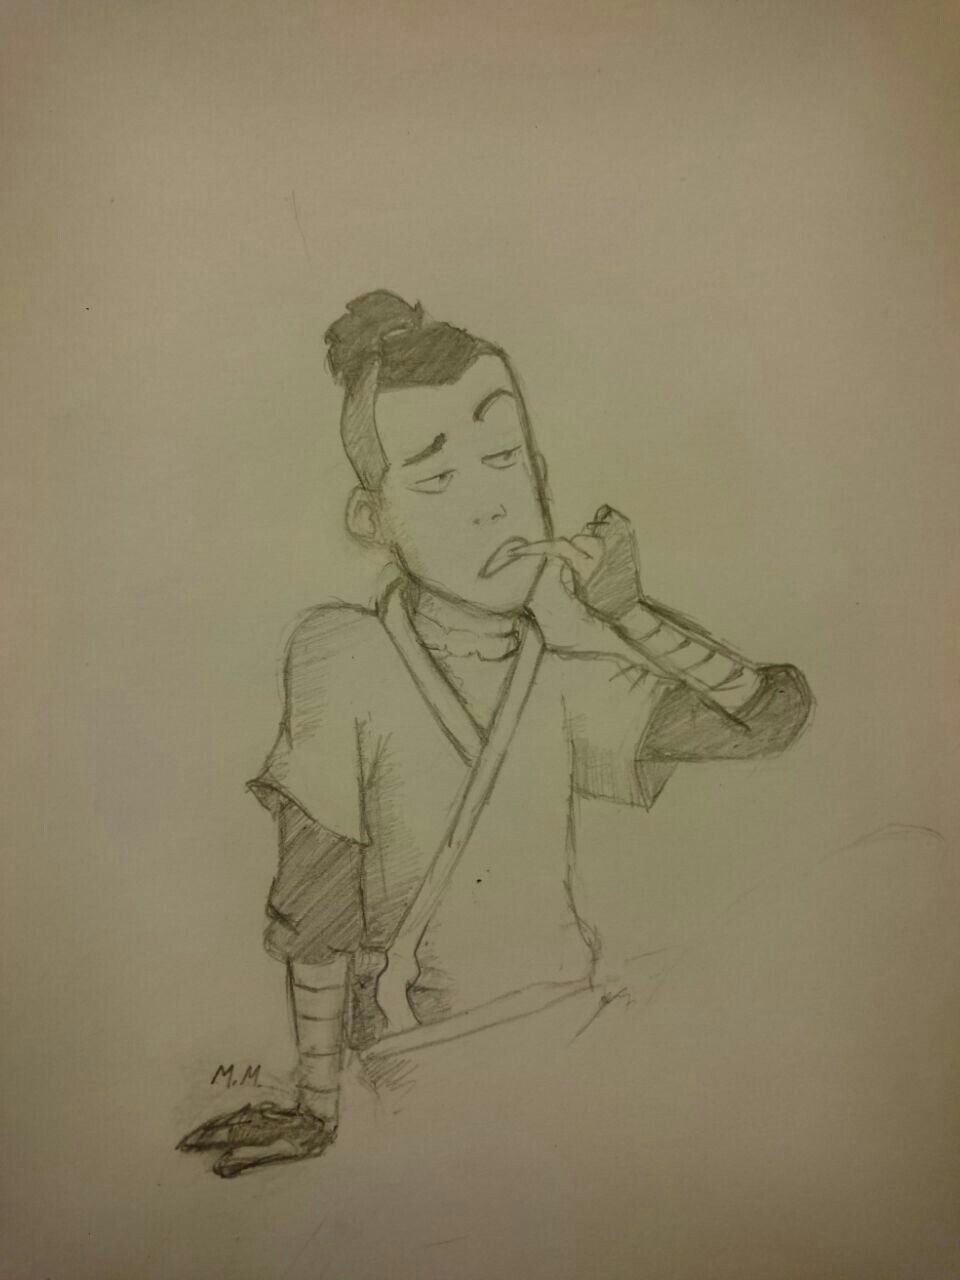 Sokka from avatar the last airbender avatardrawingsketch paintingwatertribeaangatla